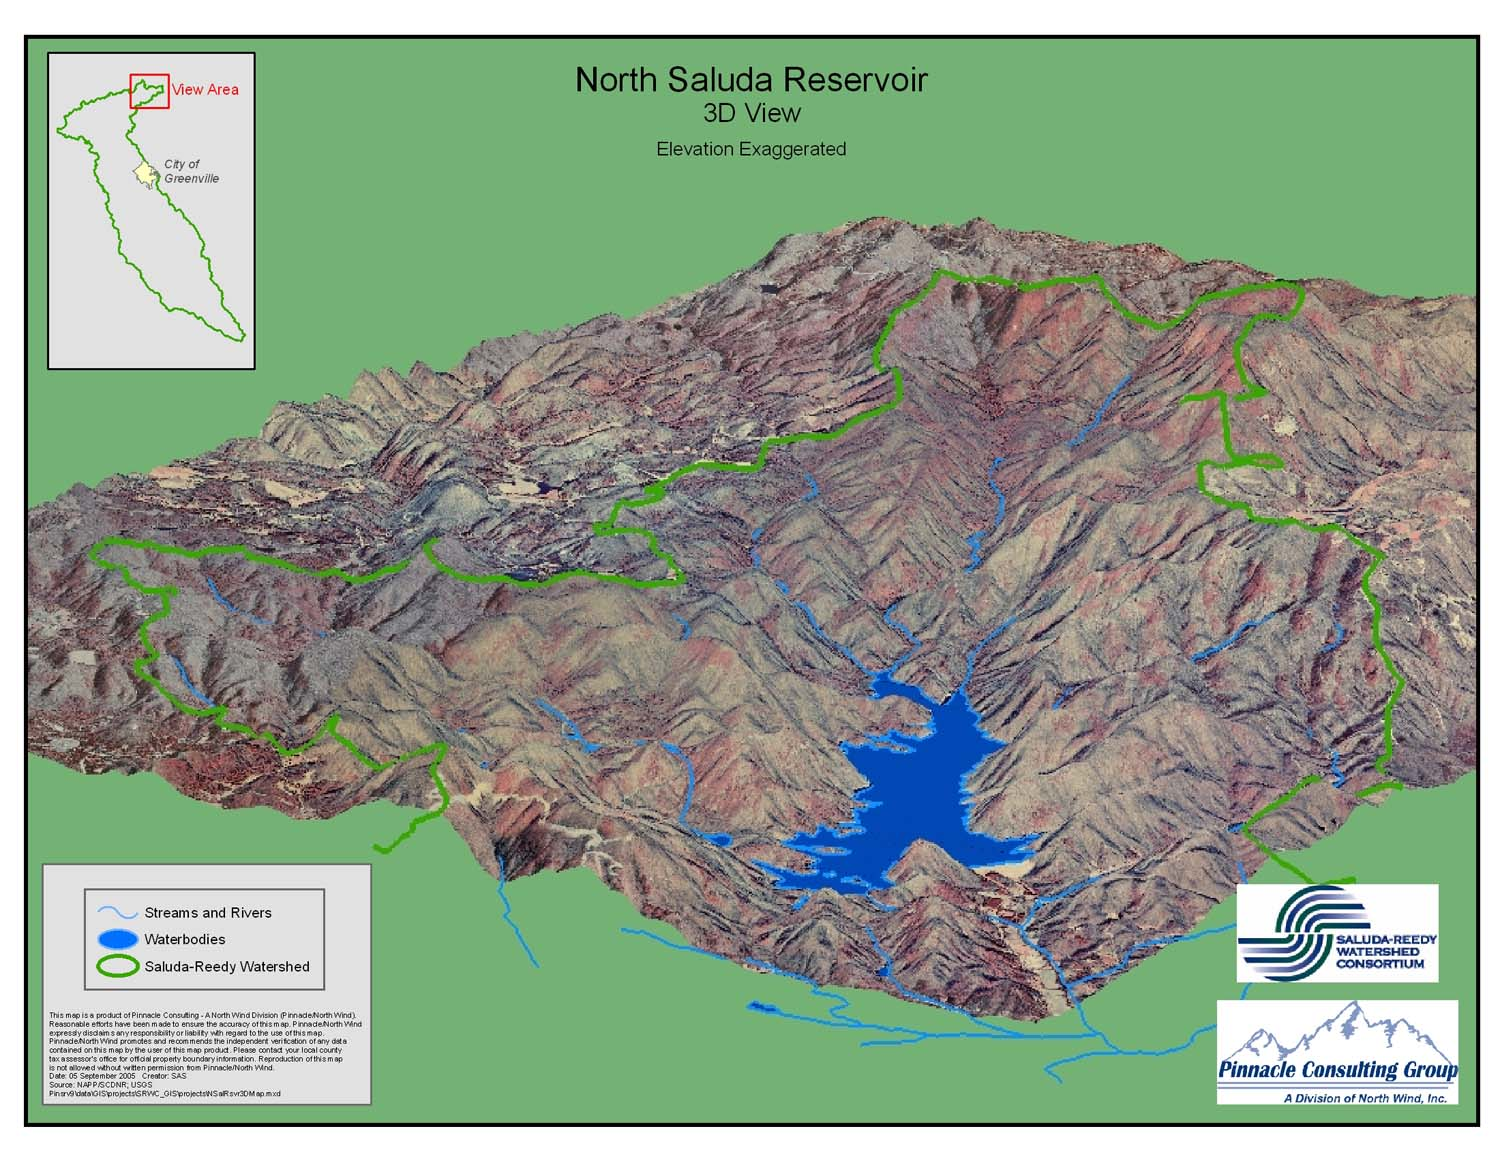 SaludaReedy Watershed Maps